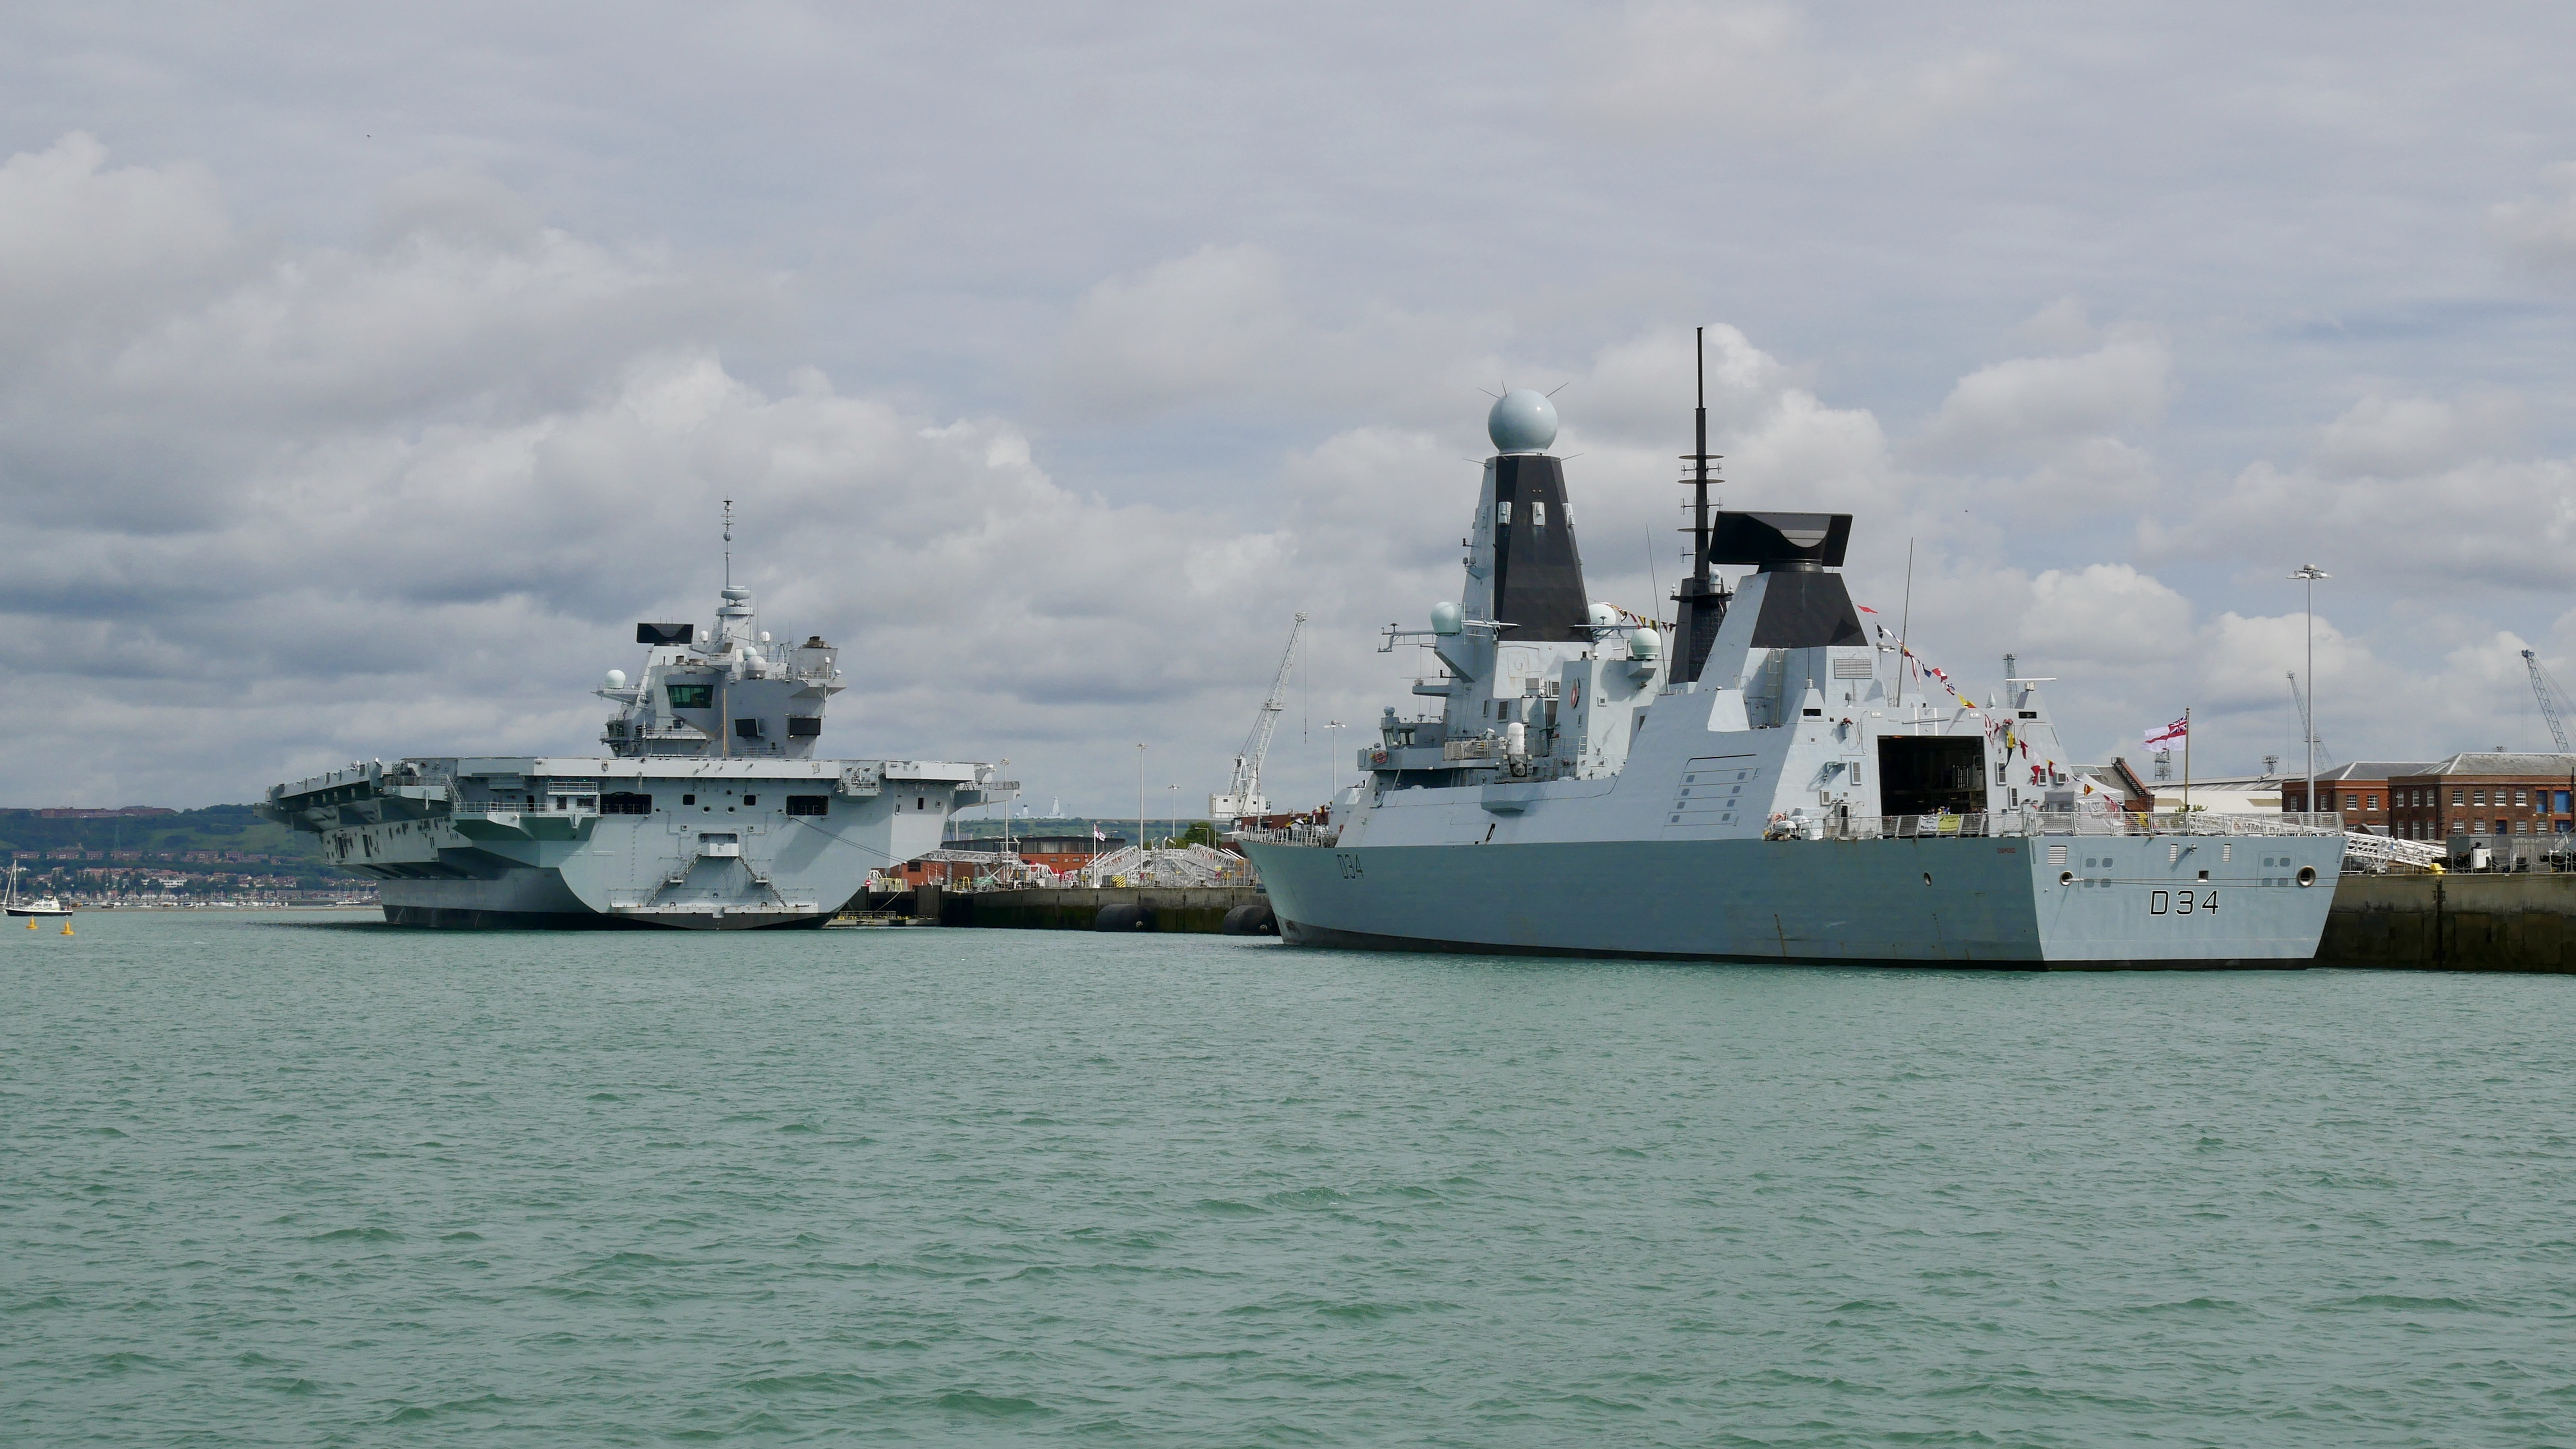 Type 45 Class destroyer - Page 3 36889909362_6018768ea6_o